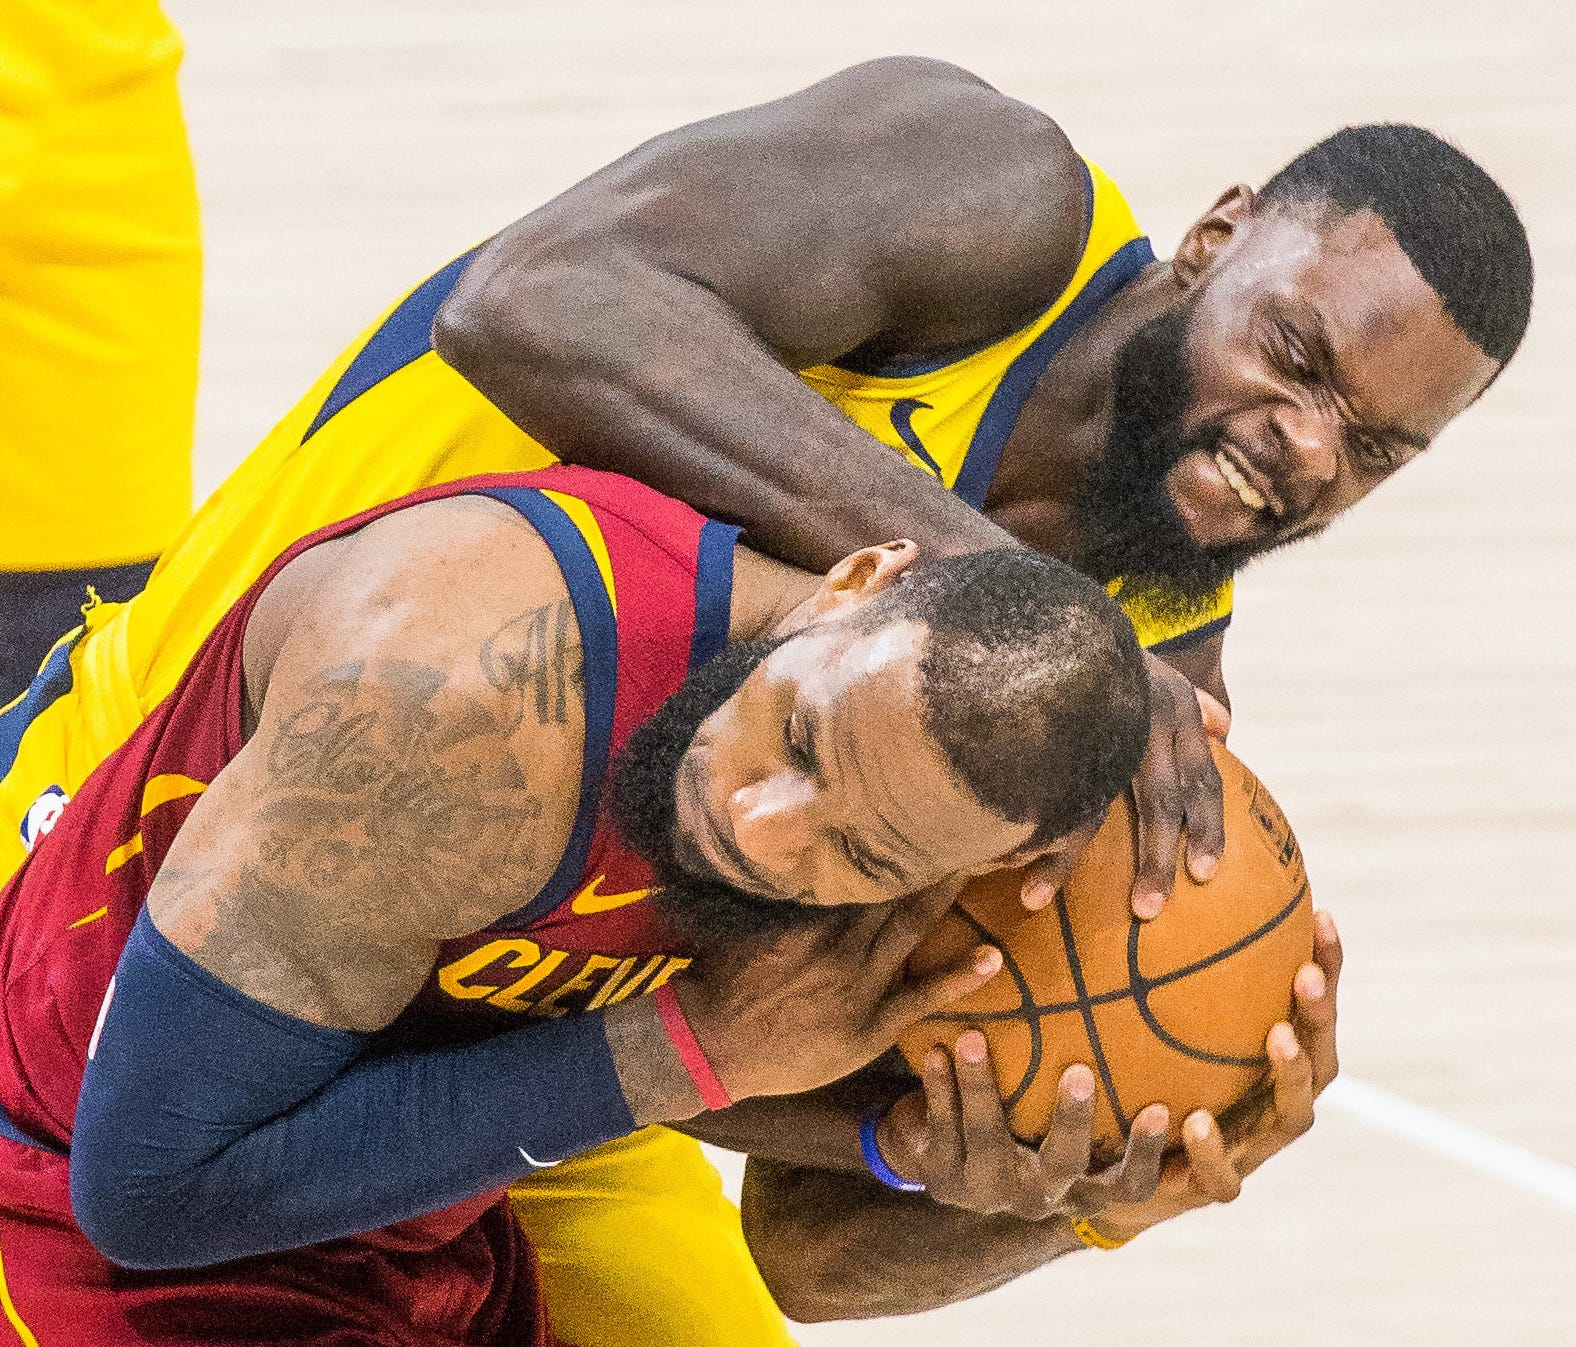 Pacers guard Lance Stephenson (1) wraps up the ball for a jump ball over Cavaliers forward LeBron James.